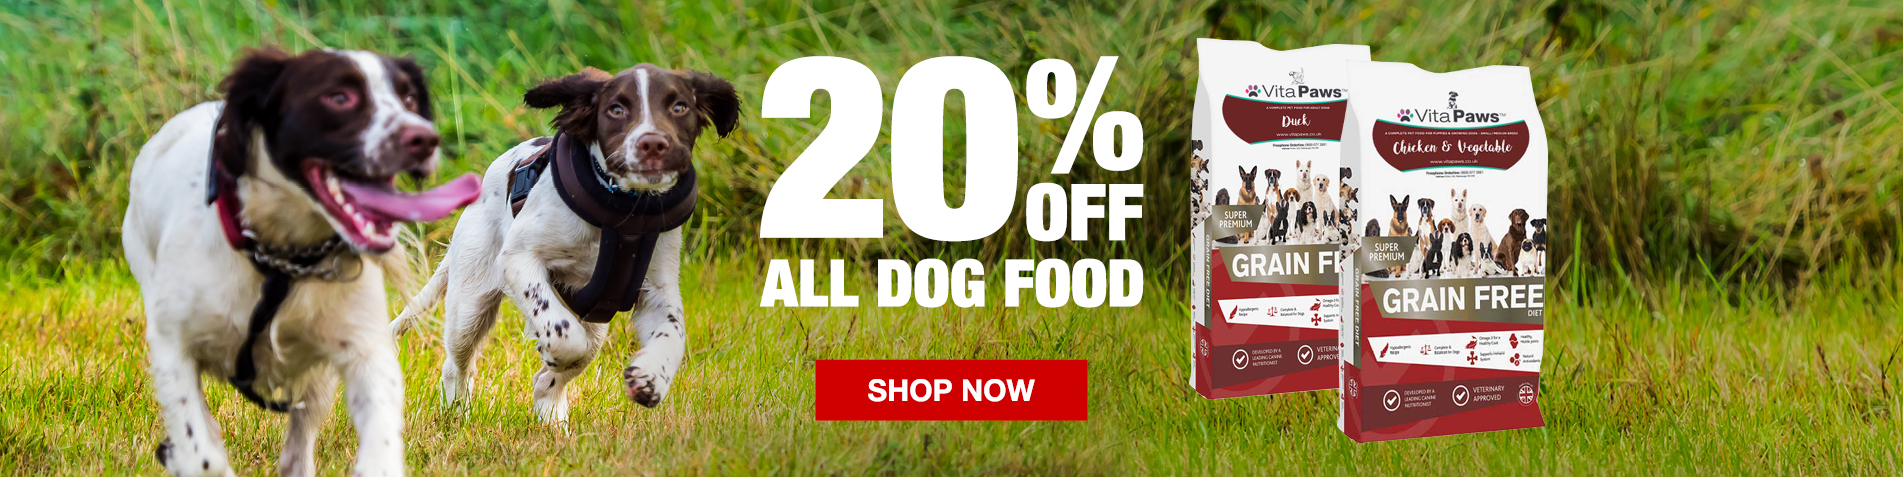 20% off all dog food